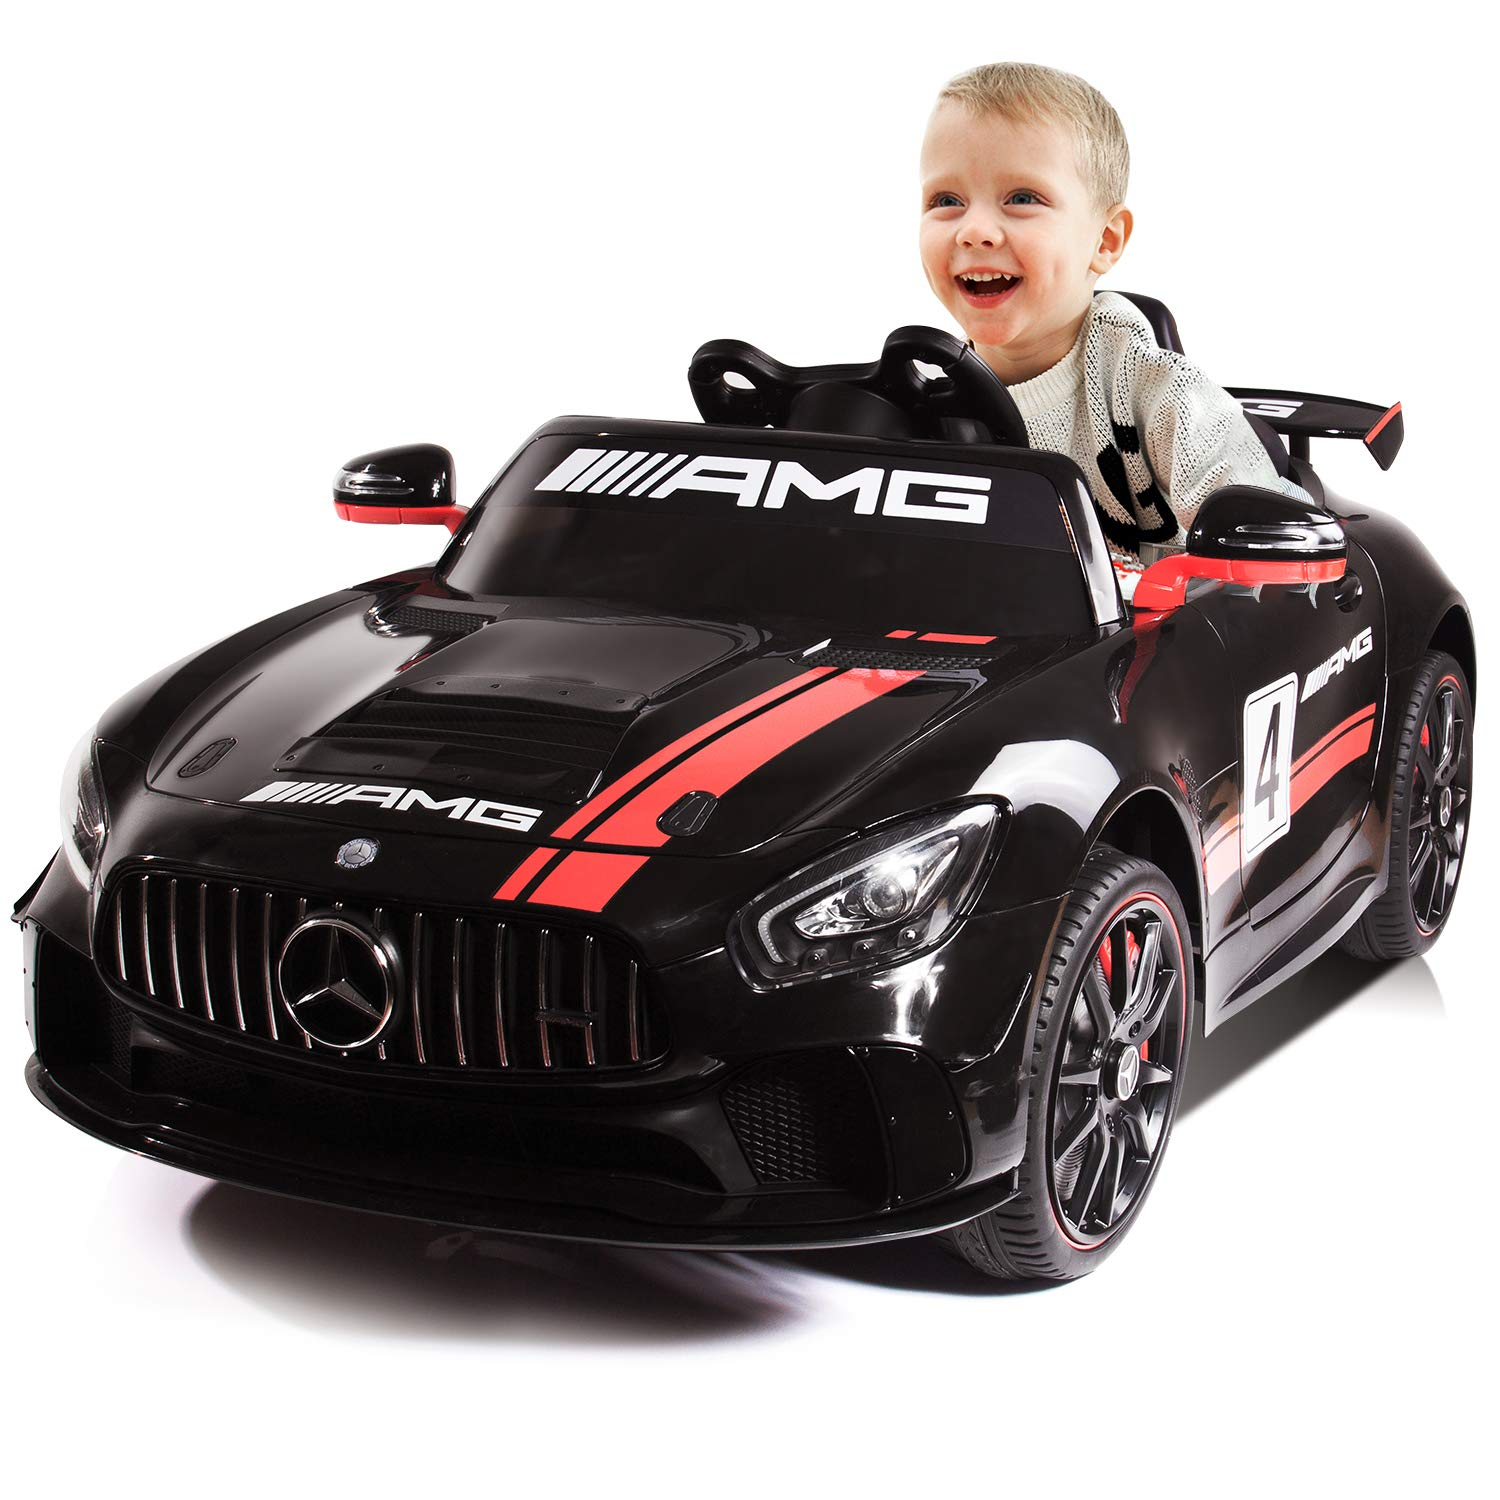 Kidsclub Electric Ride On Car with Remote Control for Kids, 12V Power Battery Official Licensed Kids Car with 2.4G Radio Parental Control Opening Doors(Black Mercedes Benz AMG GT4)